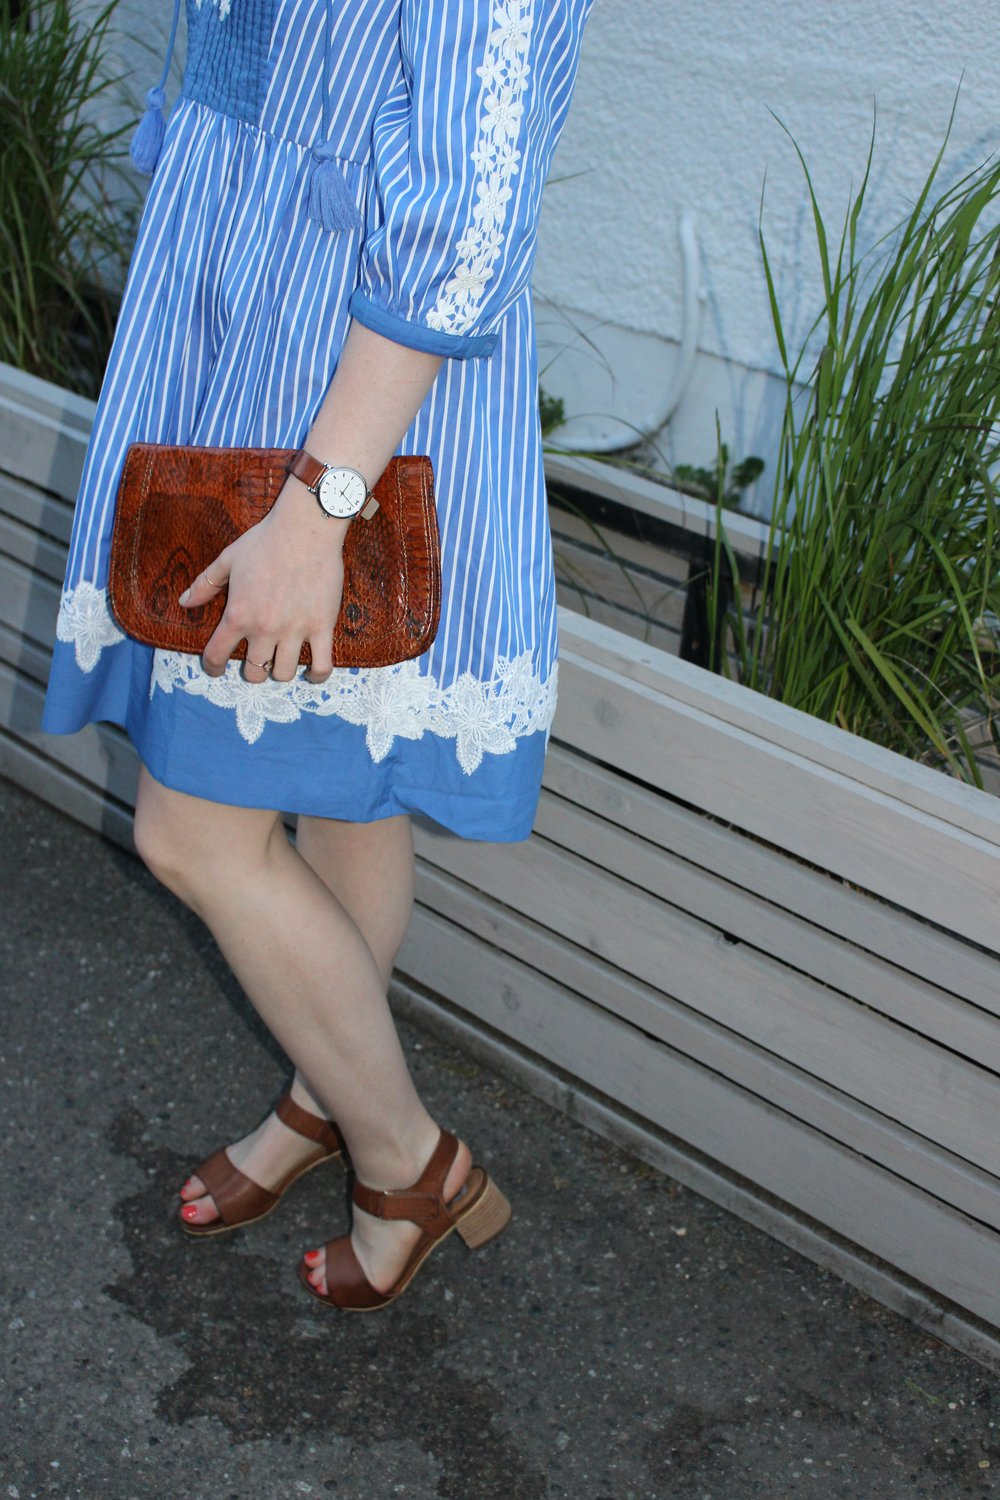 Details: Marc Jacobs Watch, Little Gold Ring, Vintage Clutch, Steve Madden Sandals